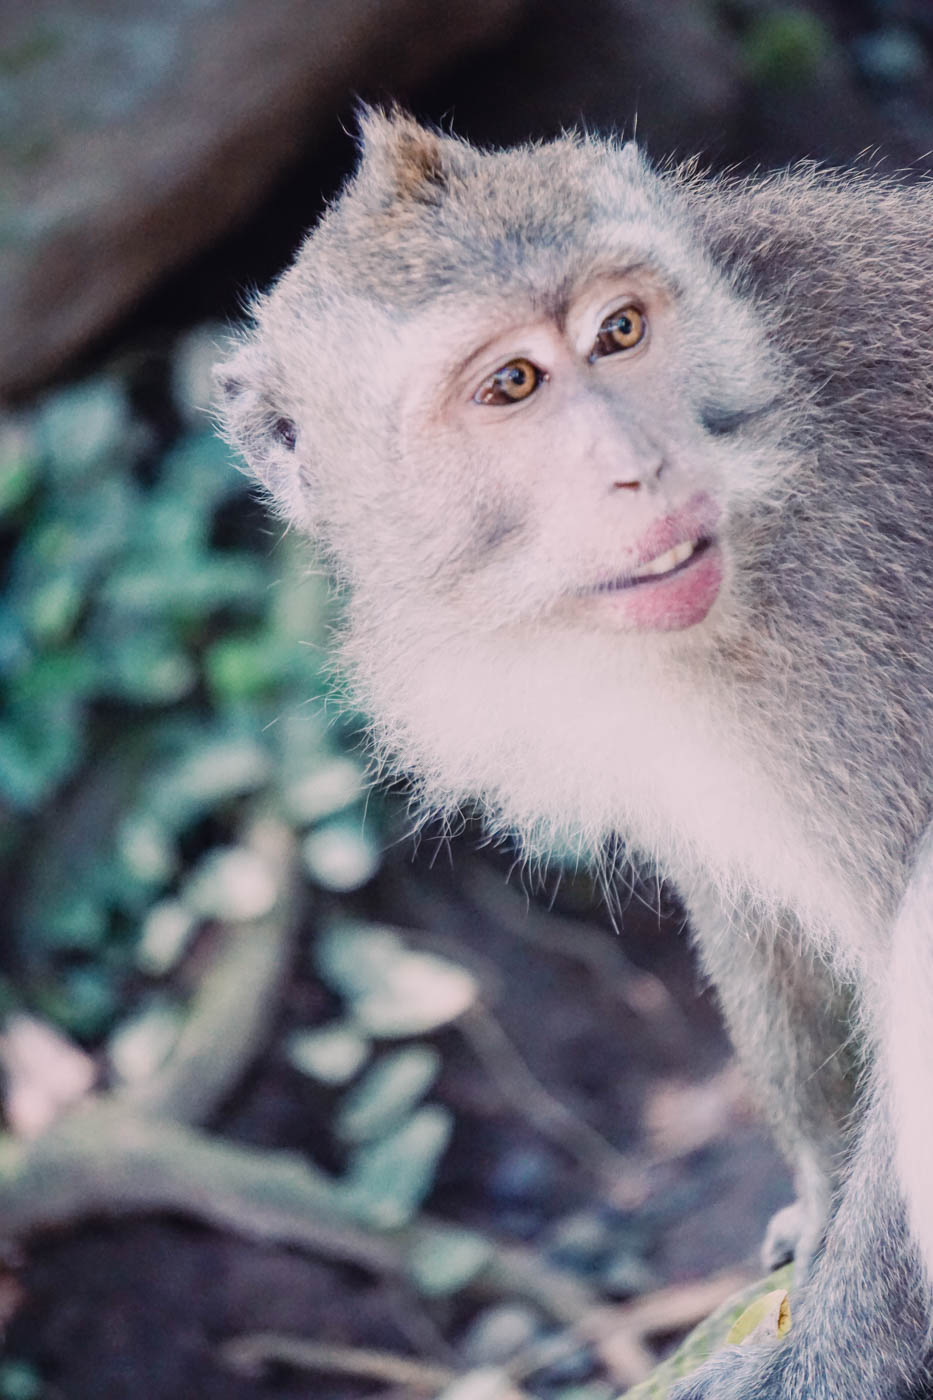 Ubud Monkey Forest - Best Things to do in Bali #traveldestinations #bali #beautifulplaces